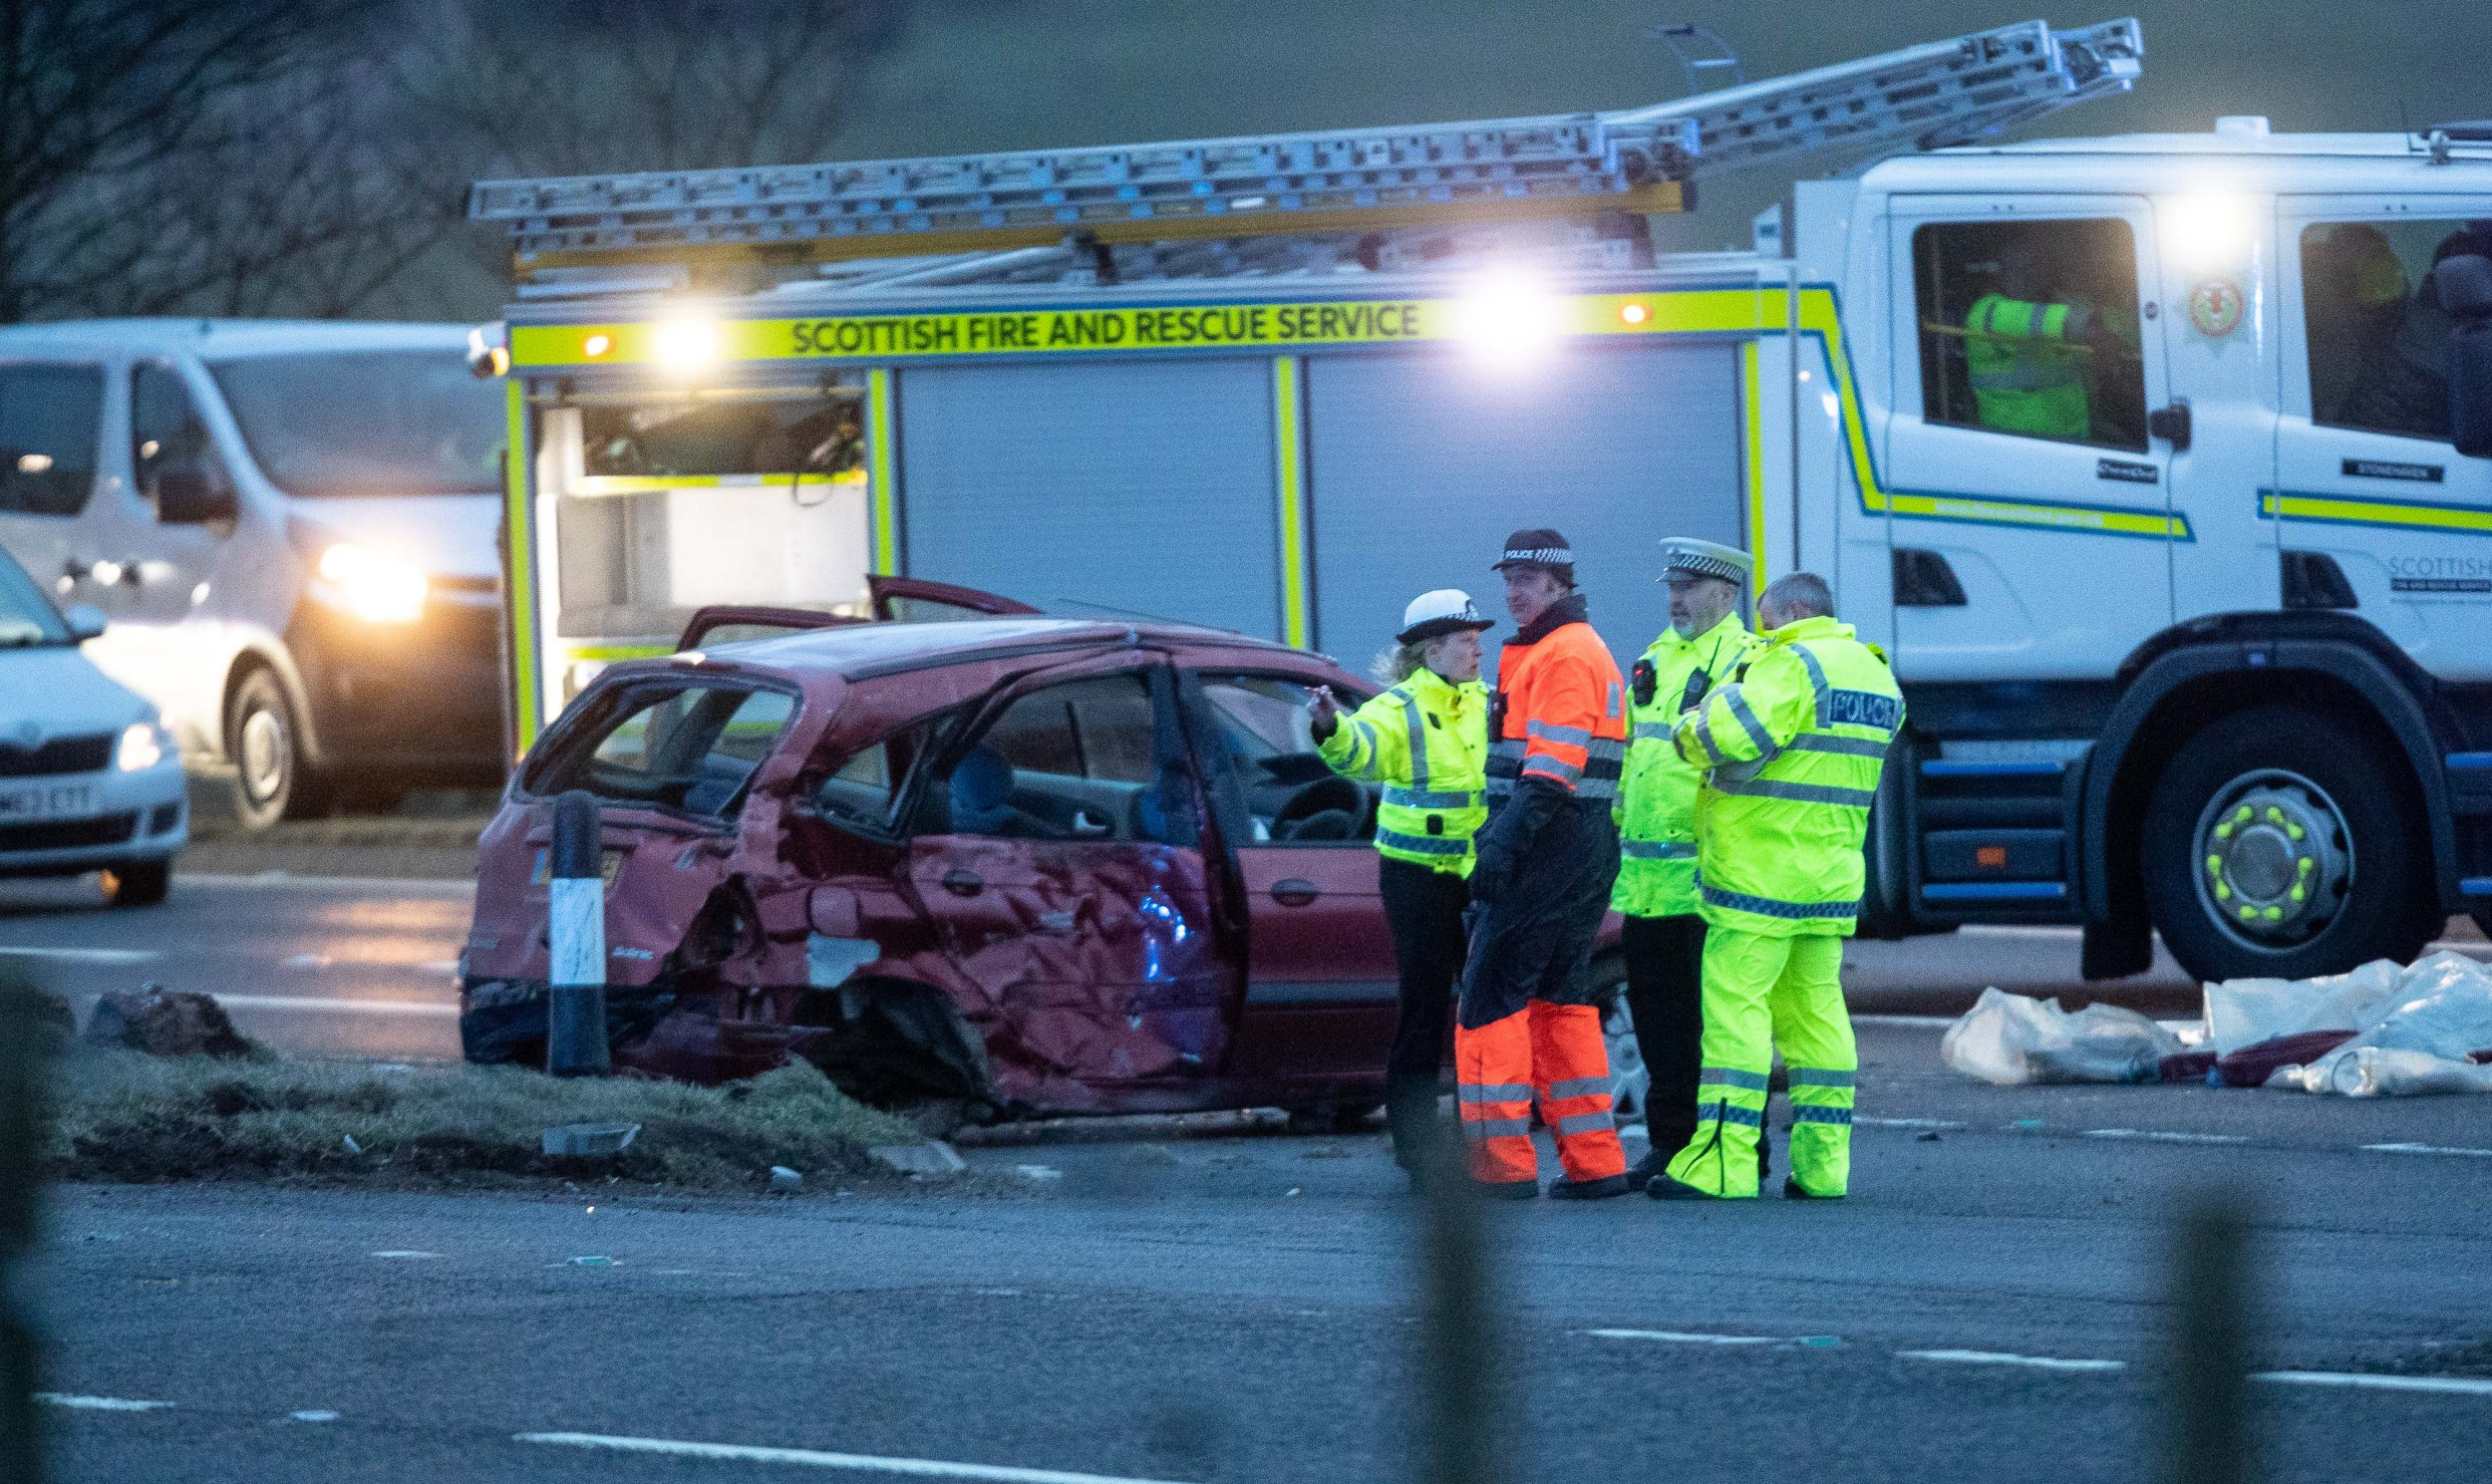 FATAL CRASH ON THE A90 SOUTH OF STONEHAVEN PIC OF EMERGENCY SERVICES AT THE SCENE ON THE MAIN ABERDEEN TO DUNDEE ROAD PIC DEREK IRONSIDE / NEWSLINE MEDIA